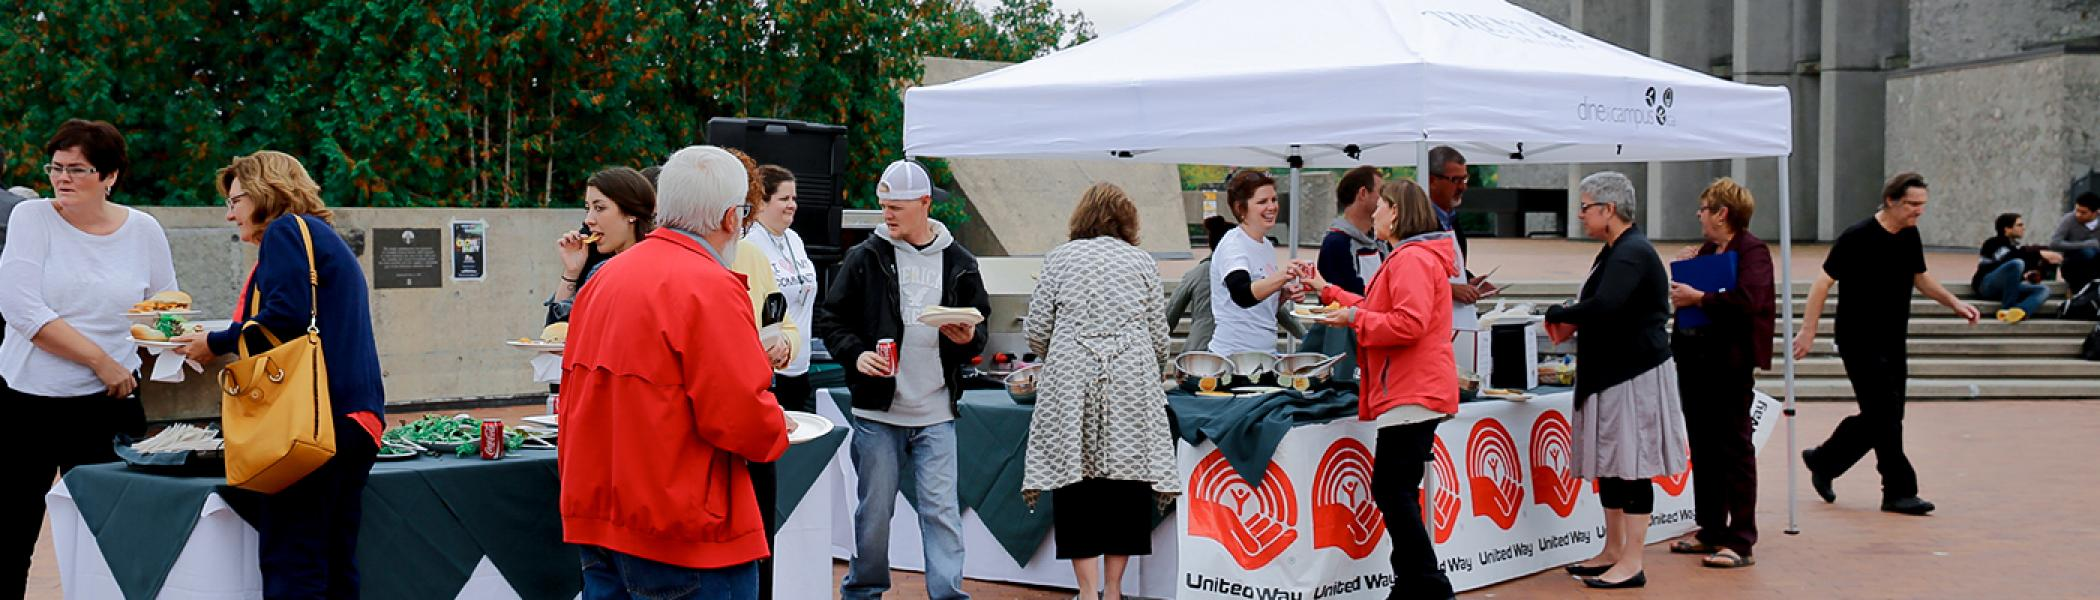 United way is raising money at Trent University through BBQ fundraisers on a sunny day